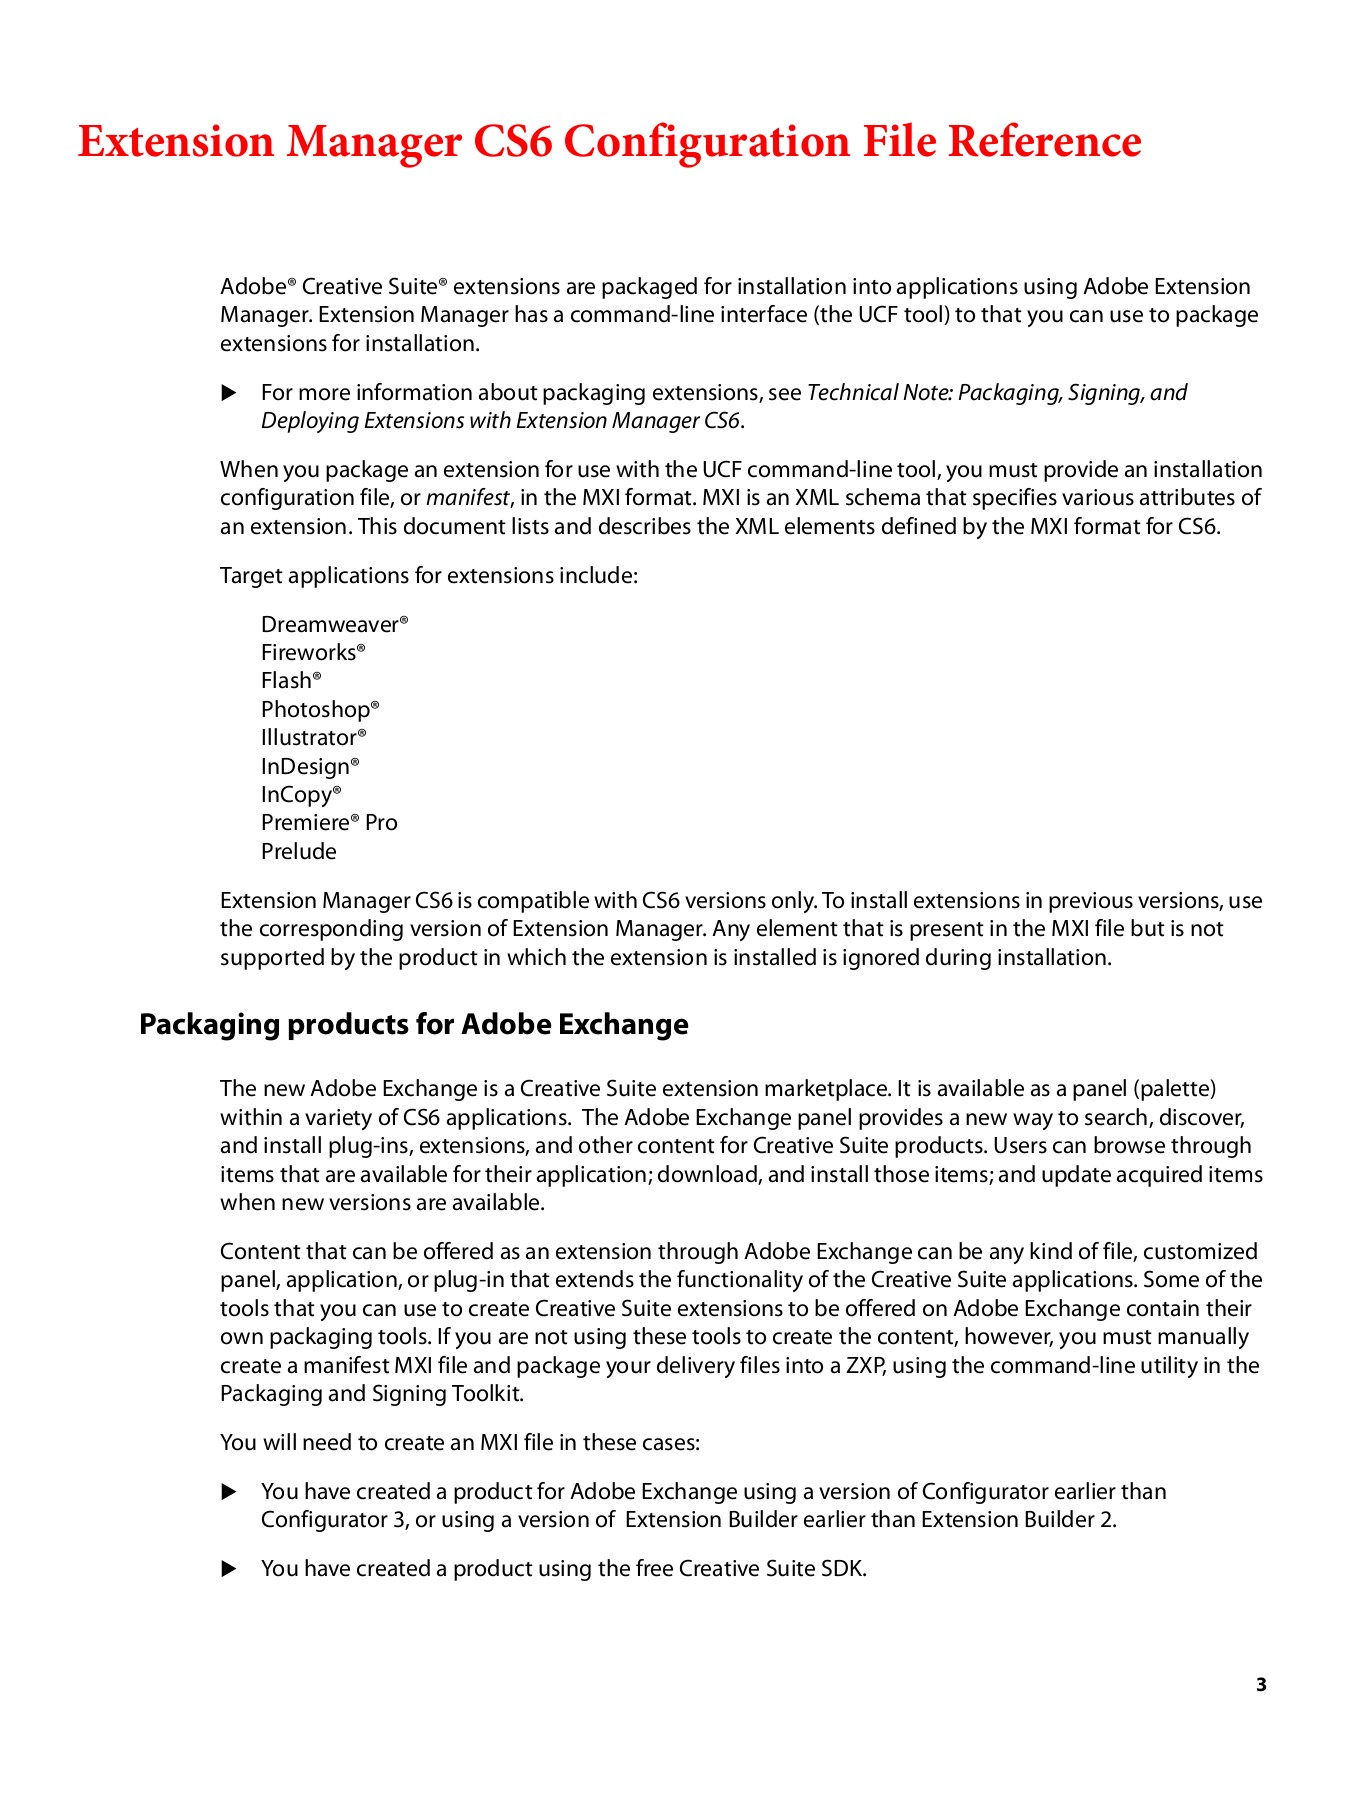 Extension Manager CS6 Configuration Reference